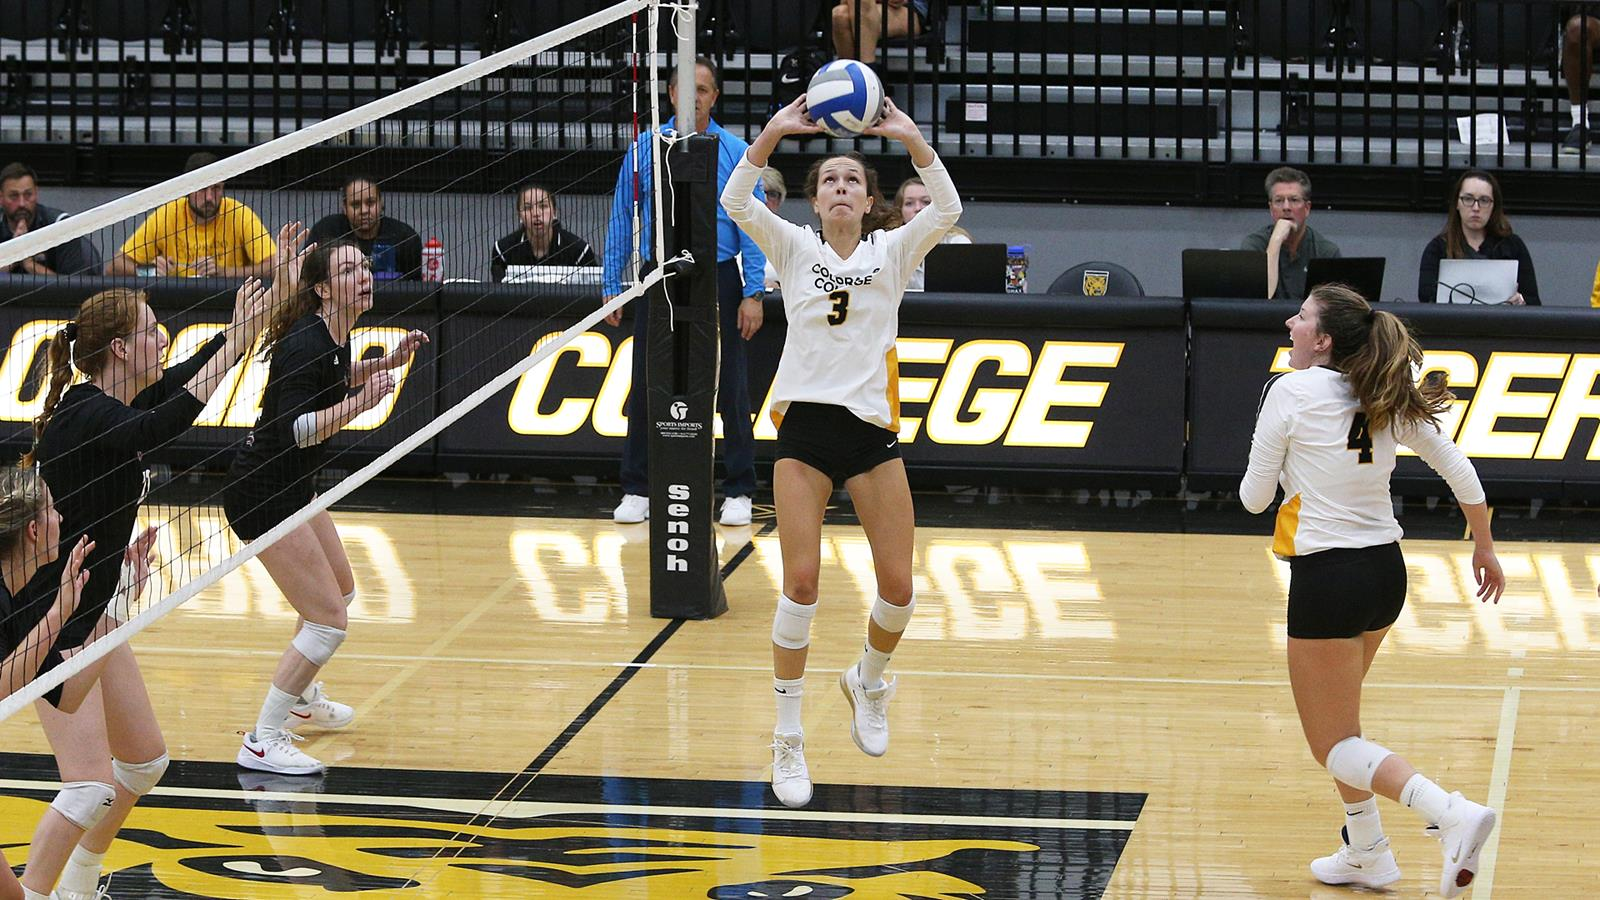 All About Lizzie 2012 lizzy counts - volleyball - colorado college athletics